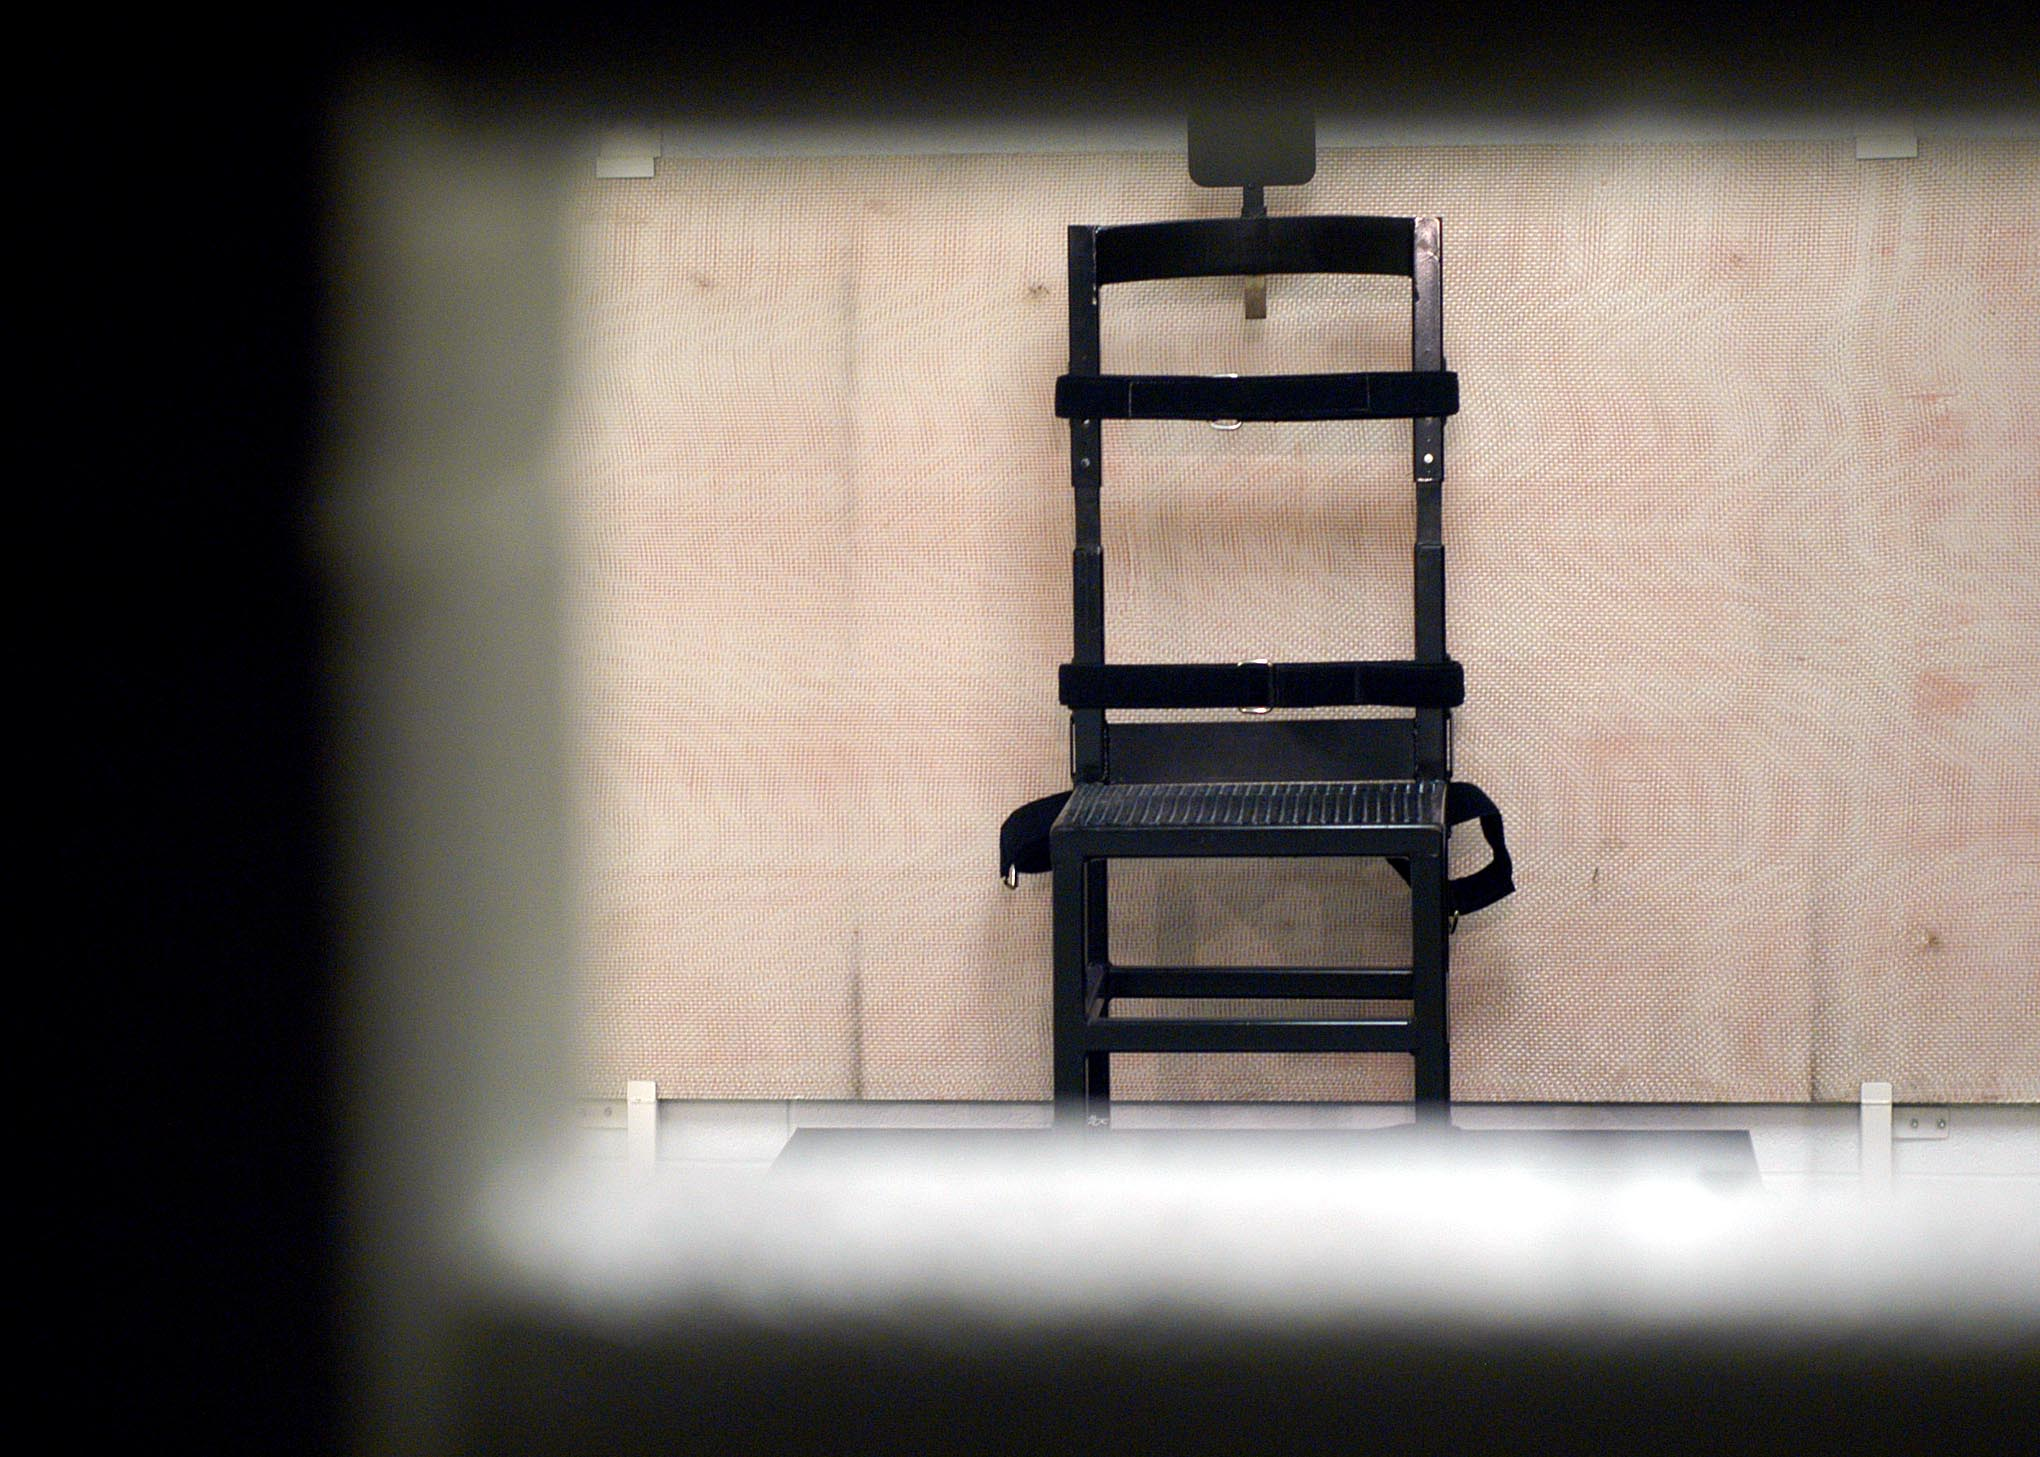 A firing squad chair in the execution chamber at Utah State Prison as seen through the rifle port May 5, 2004.